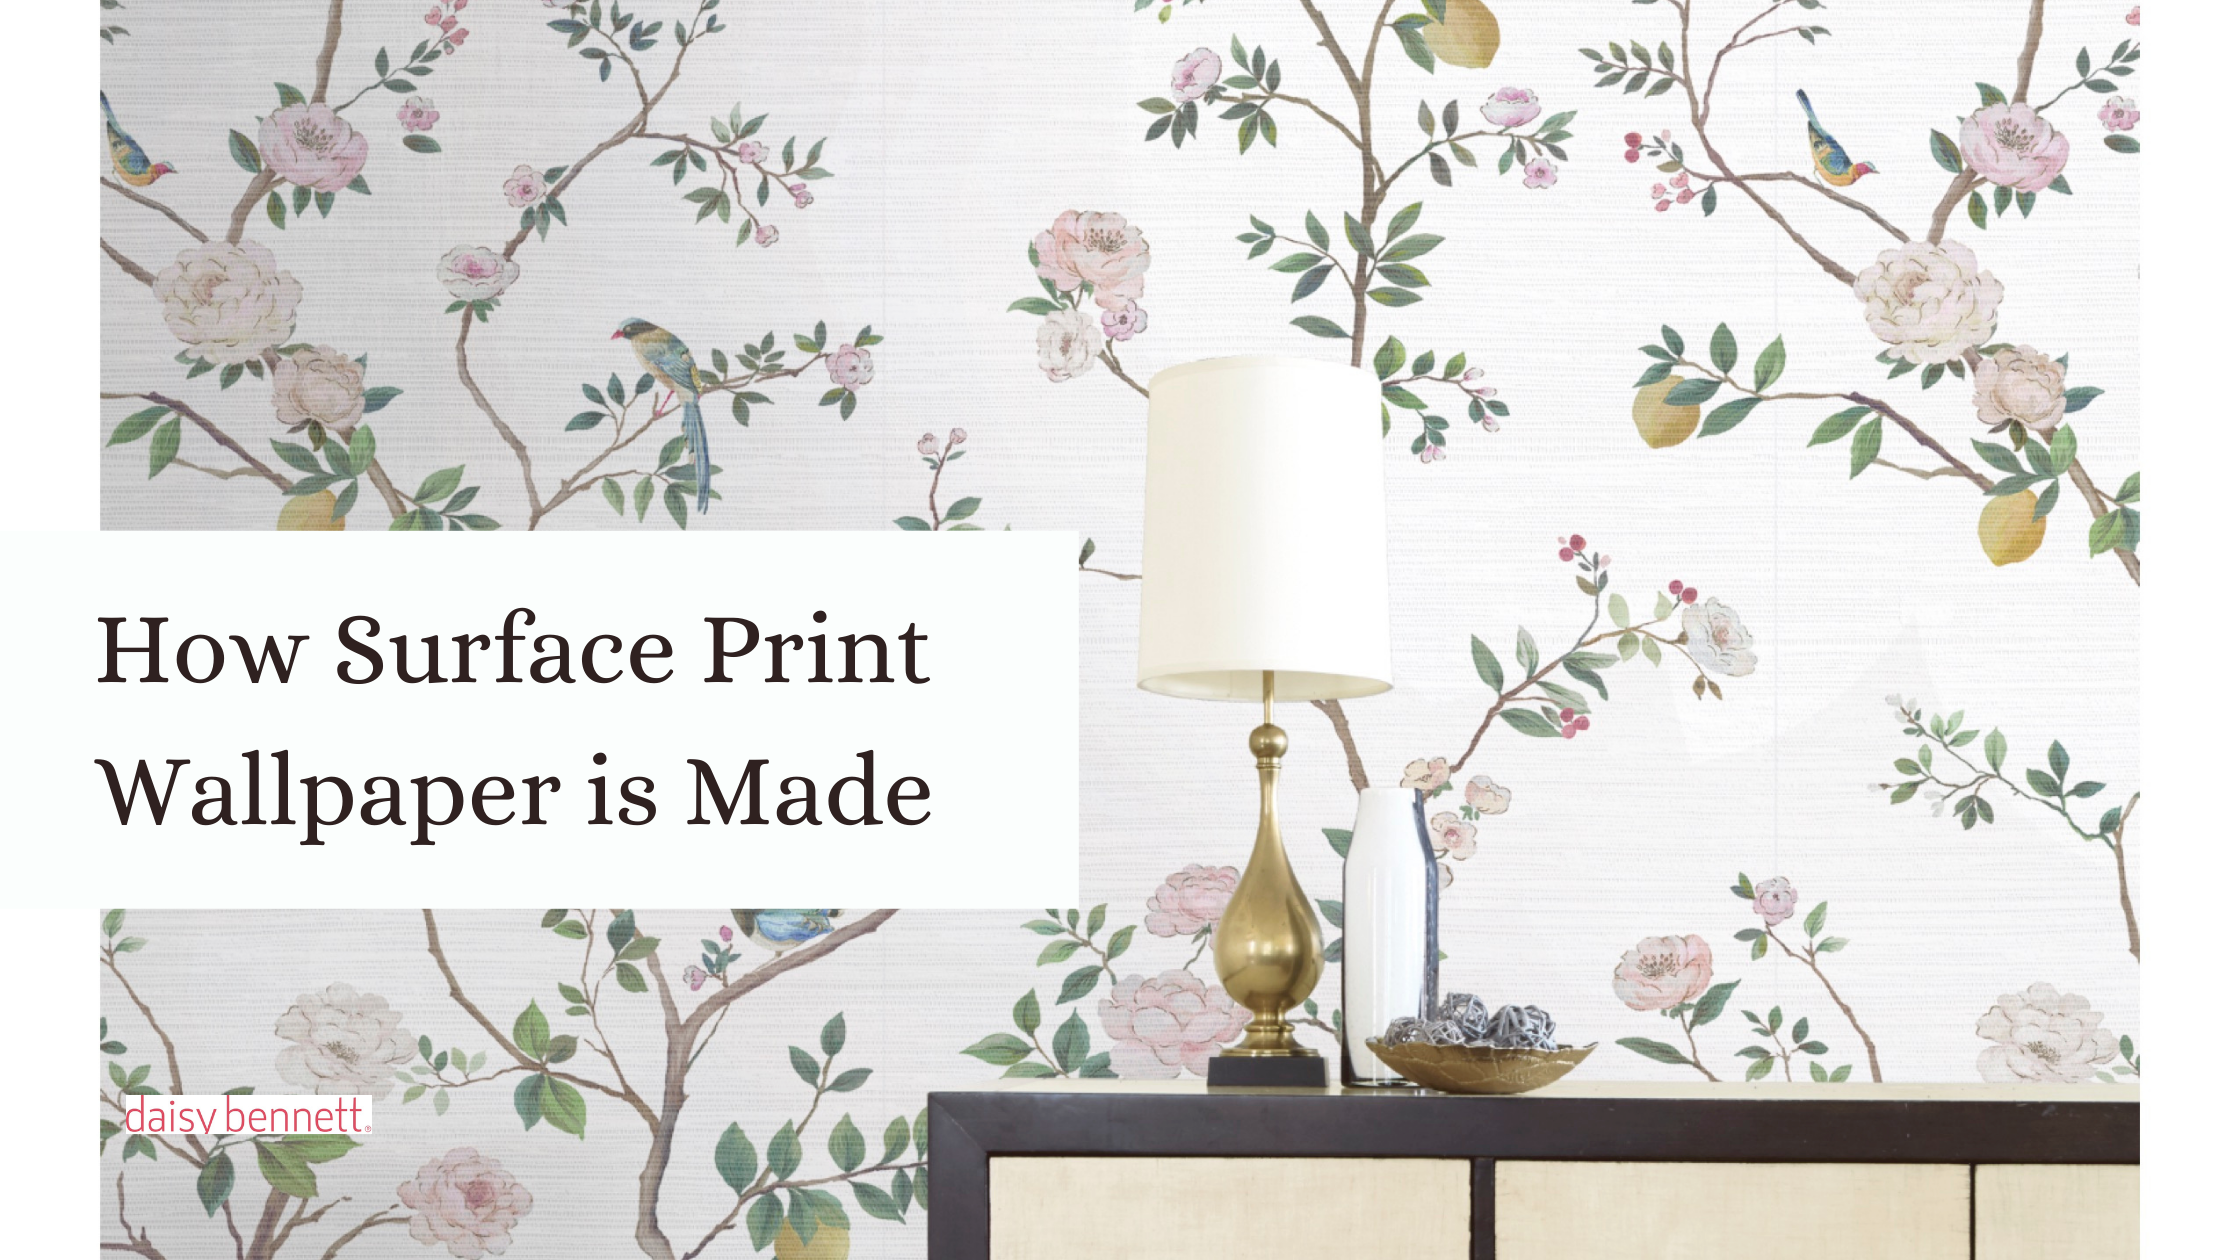 how surface print wallpaper is made, image of a decorated wallpaper